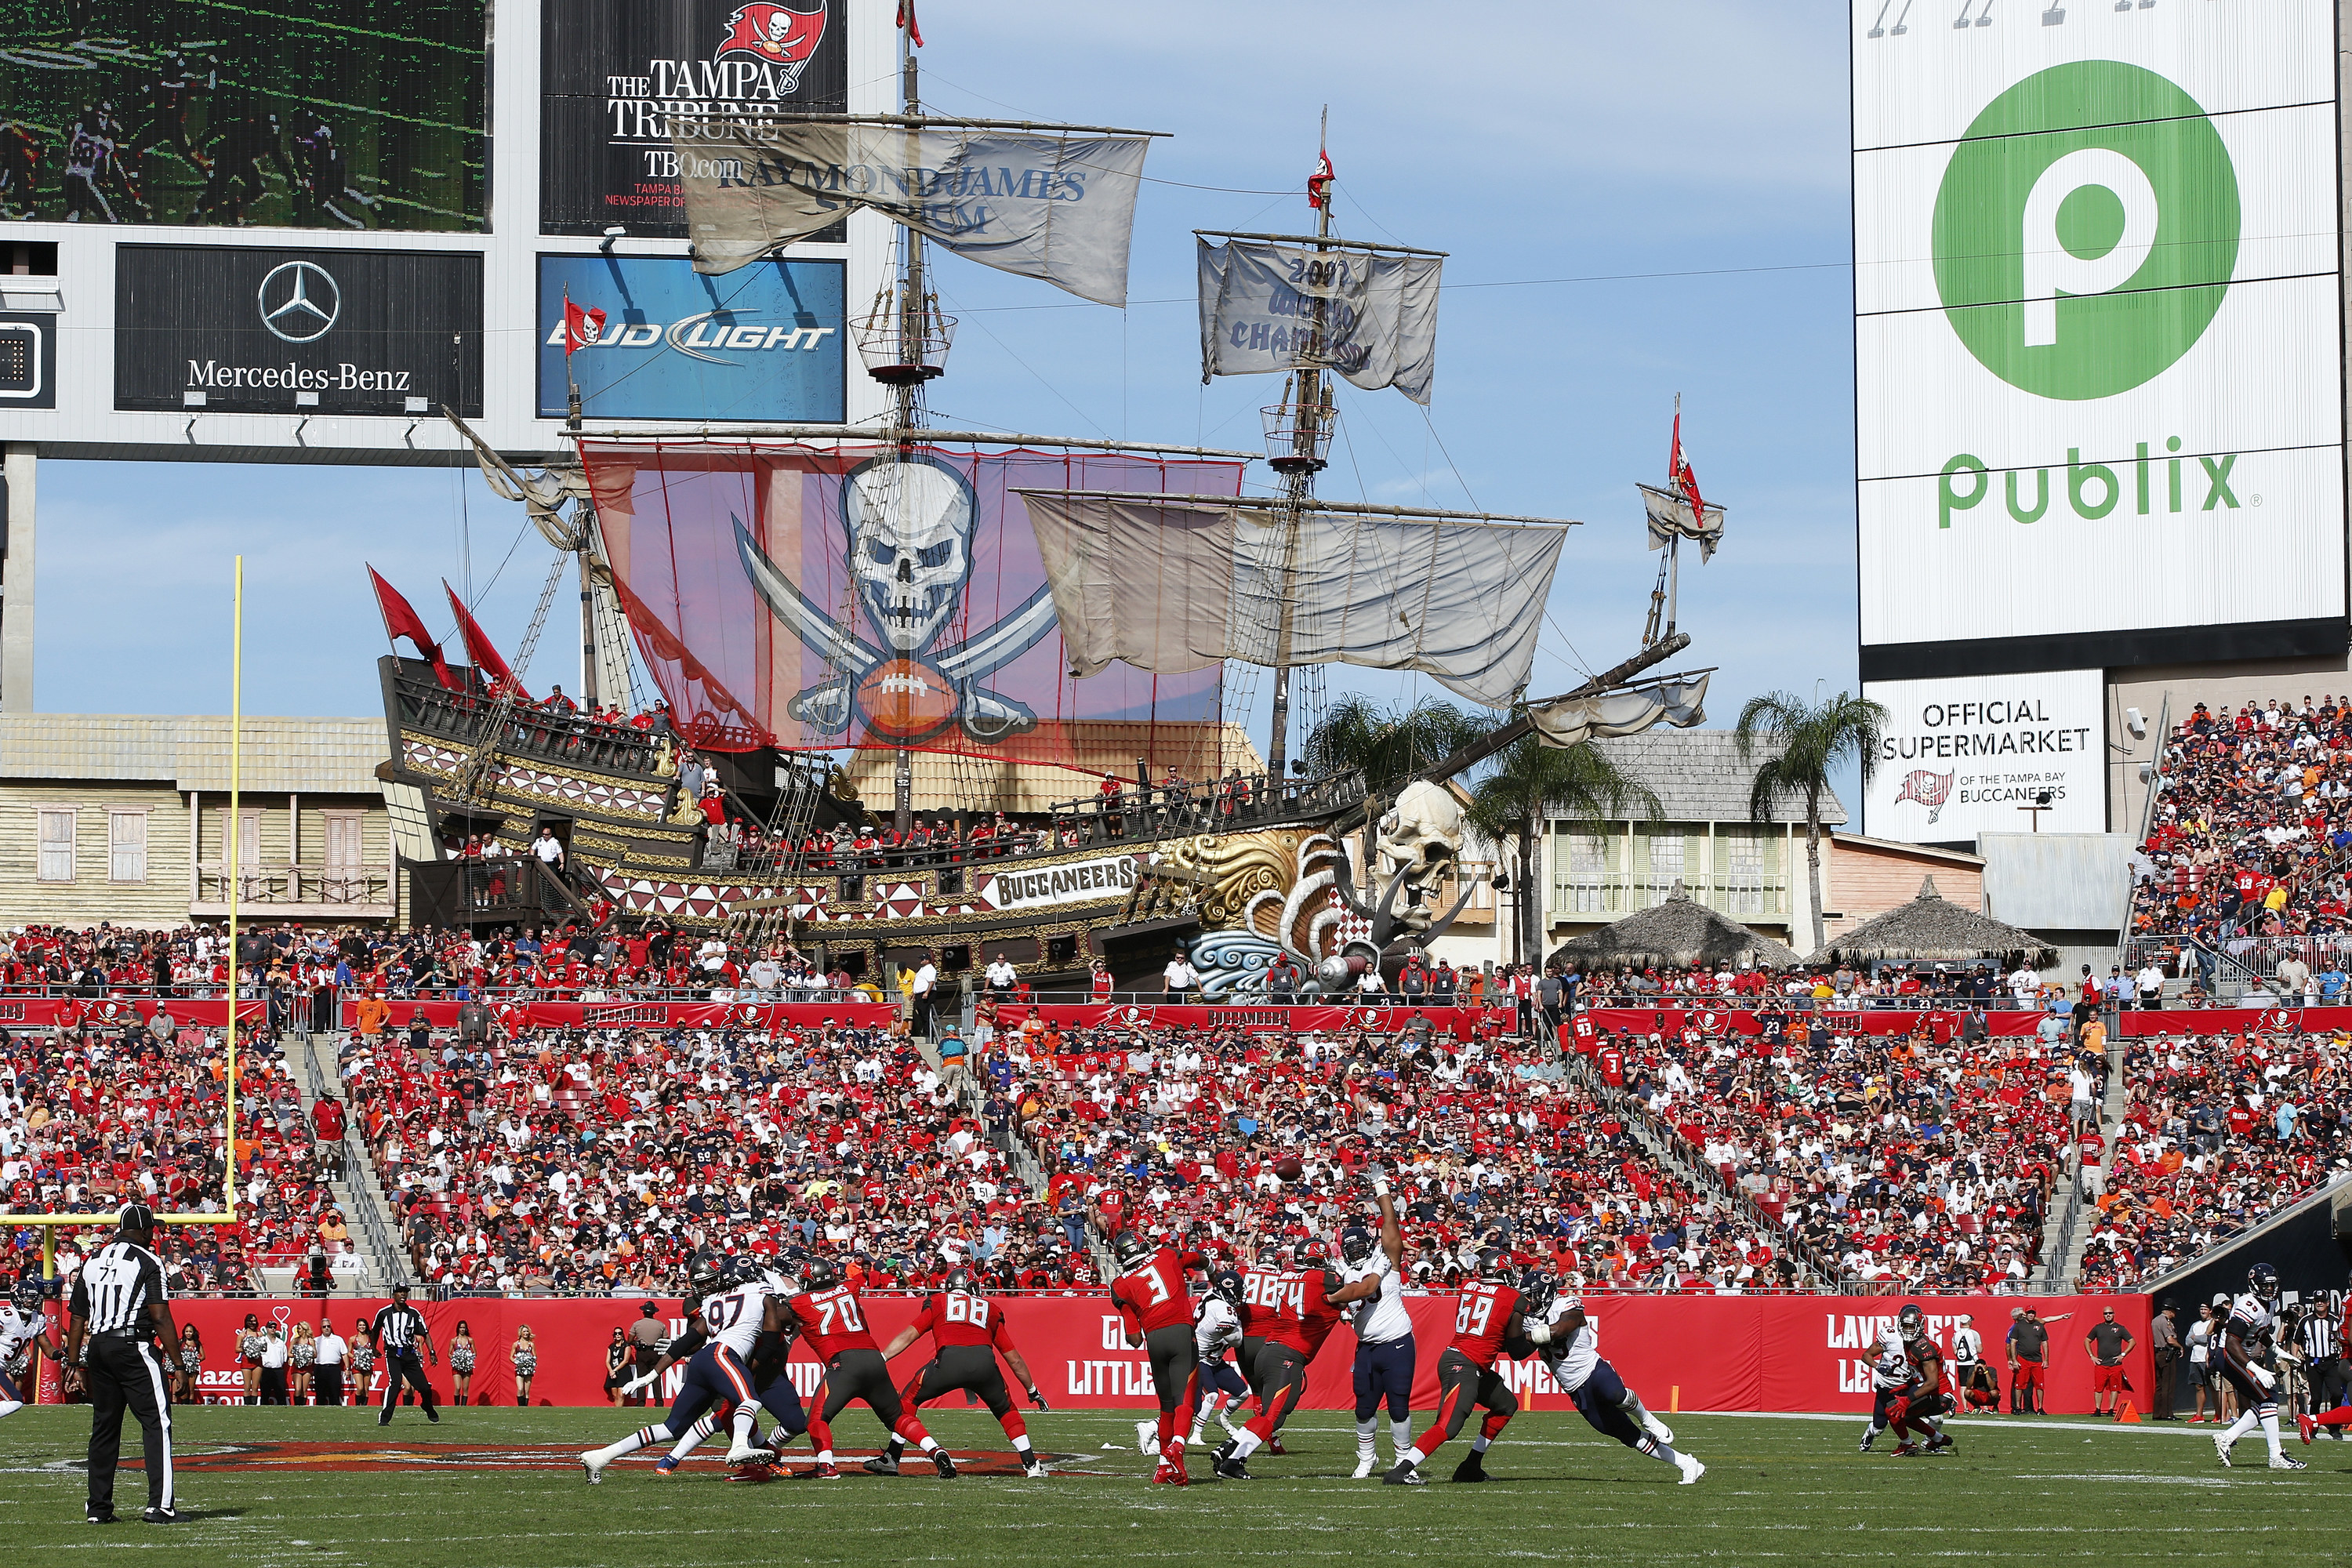 Pirate ship among the Tampa Bay fans in Raymond James Stadium.